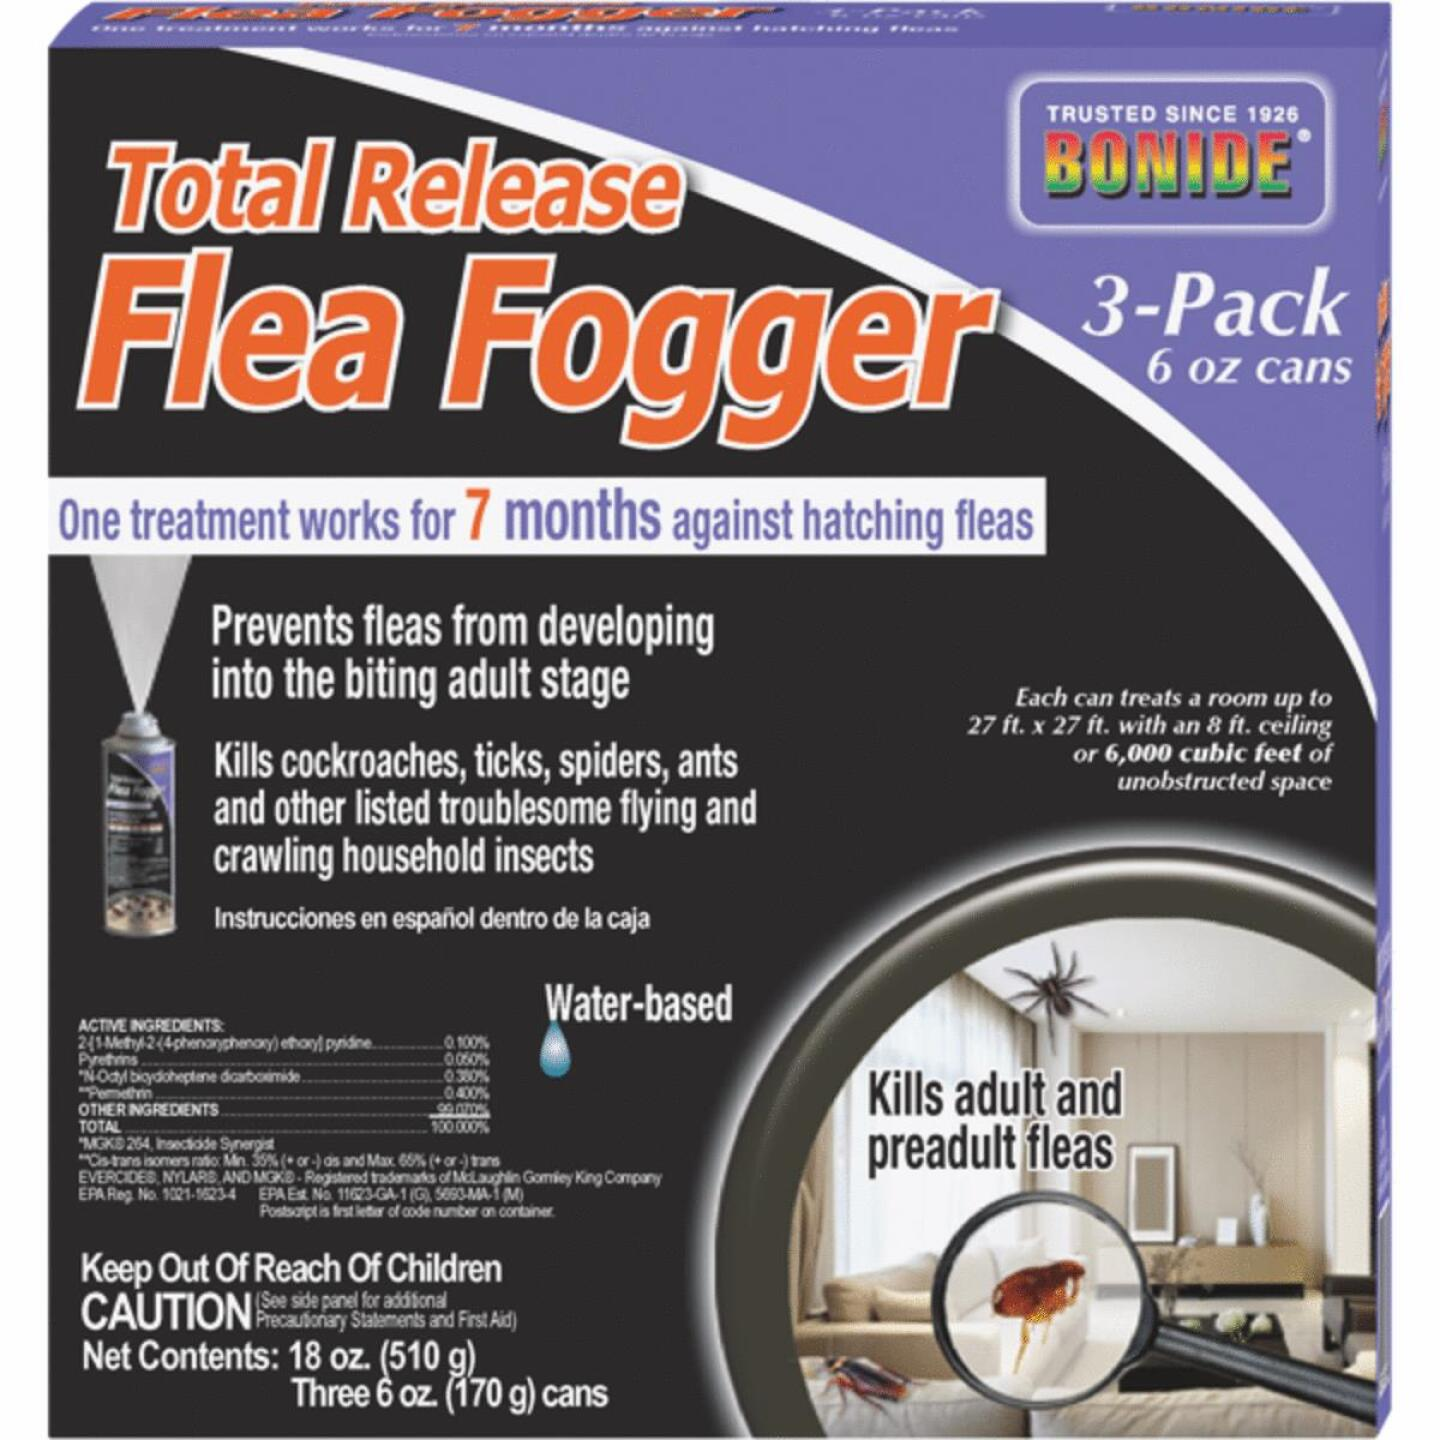 Bonide Flea 6 Oz. Indoor Insect Fogger (3-Pack) Image 1